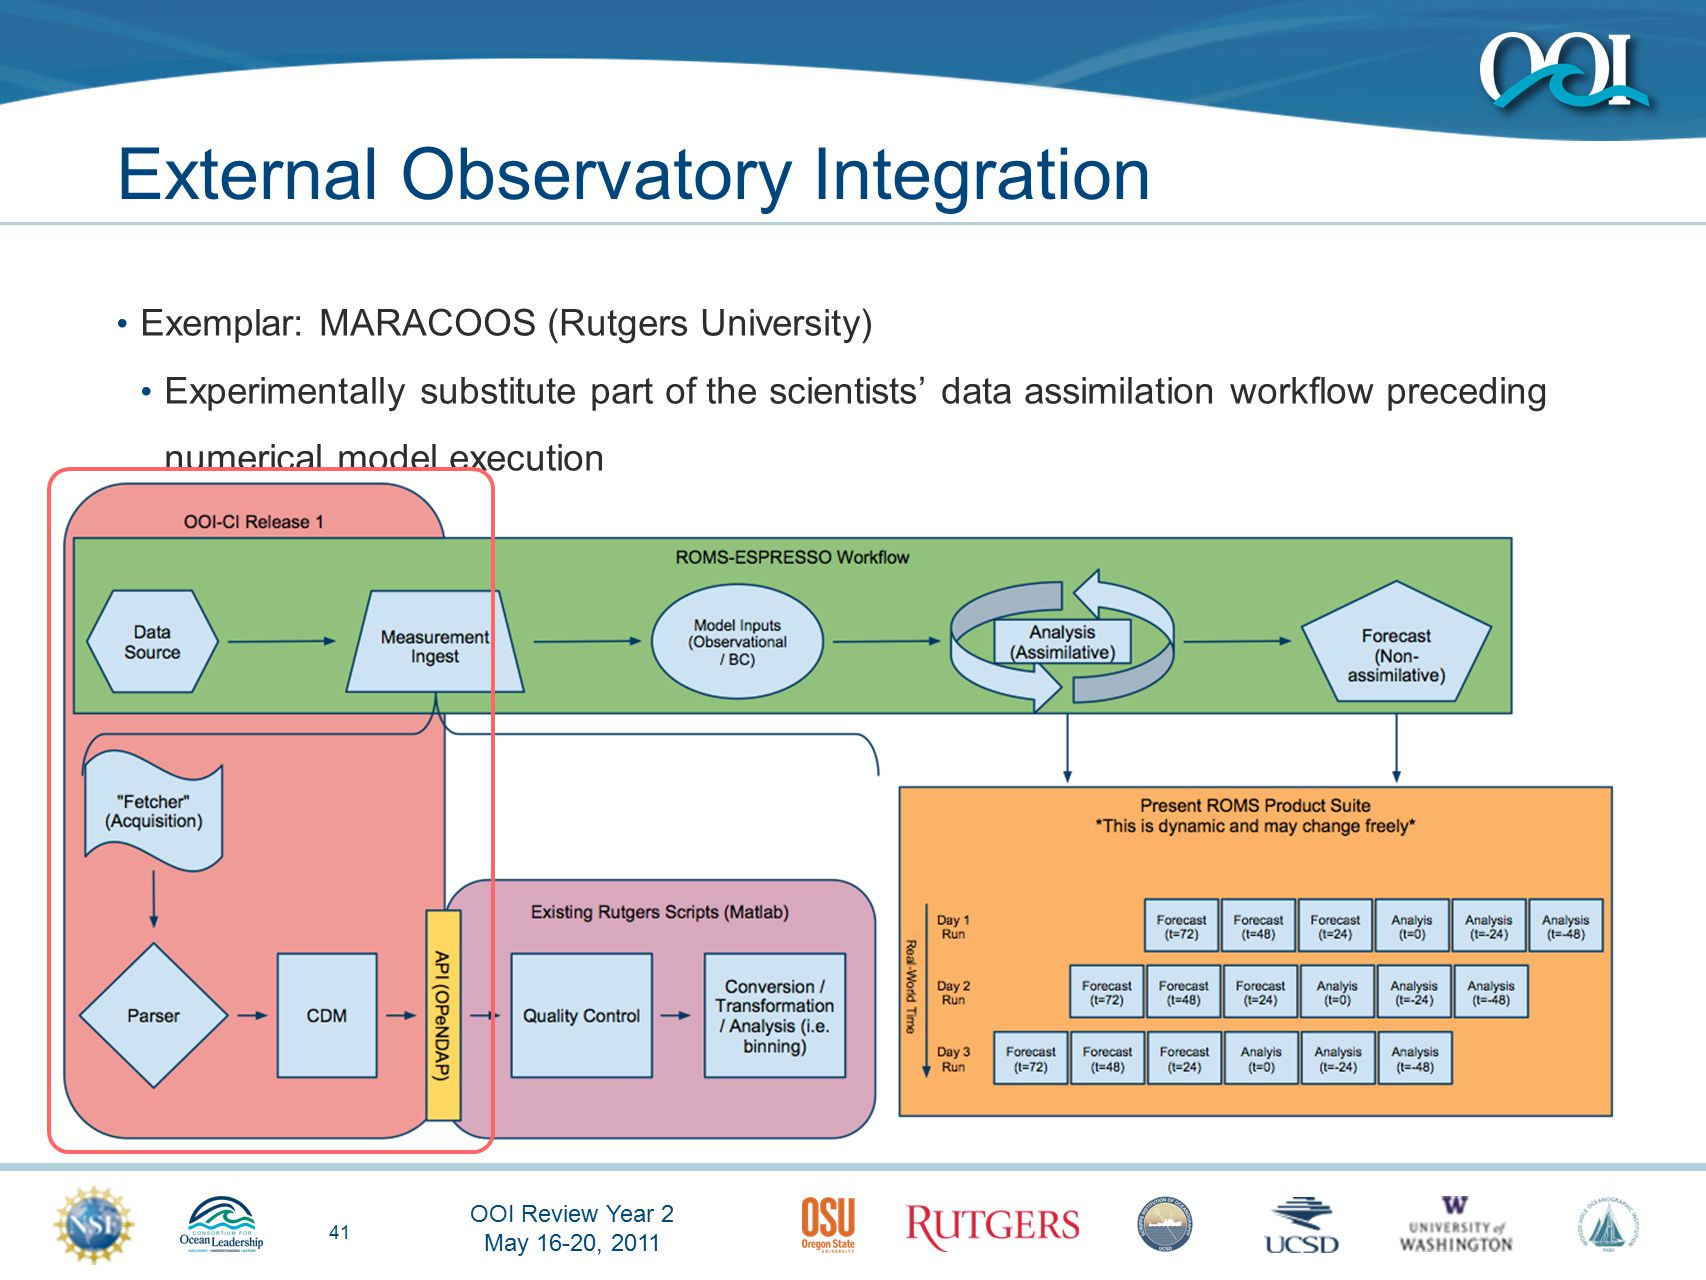 OOI Review Year 2 May 16-20, 2011 41 External Observatory Integration Exemplar: MARACOOS (Rutgers University) Experimentally substitute part of the scientists' data assimilation workflow preceding numerical model execution